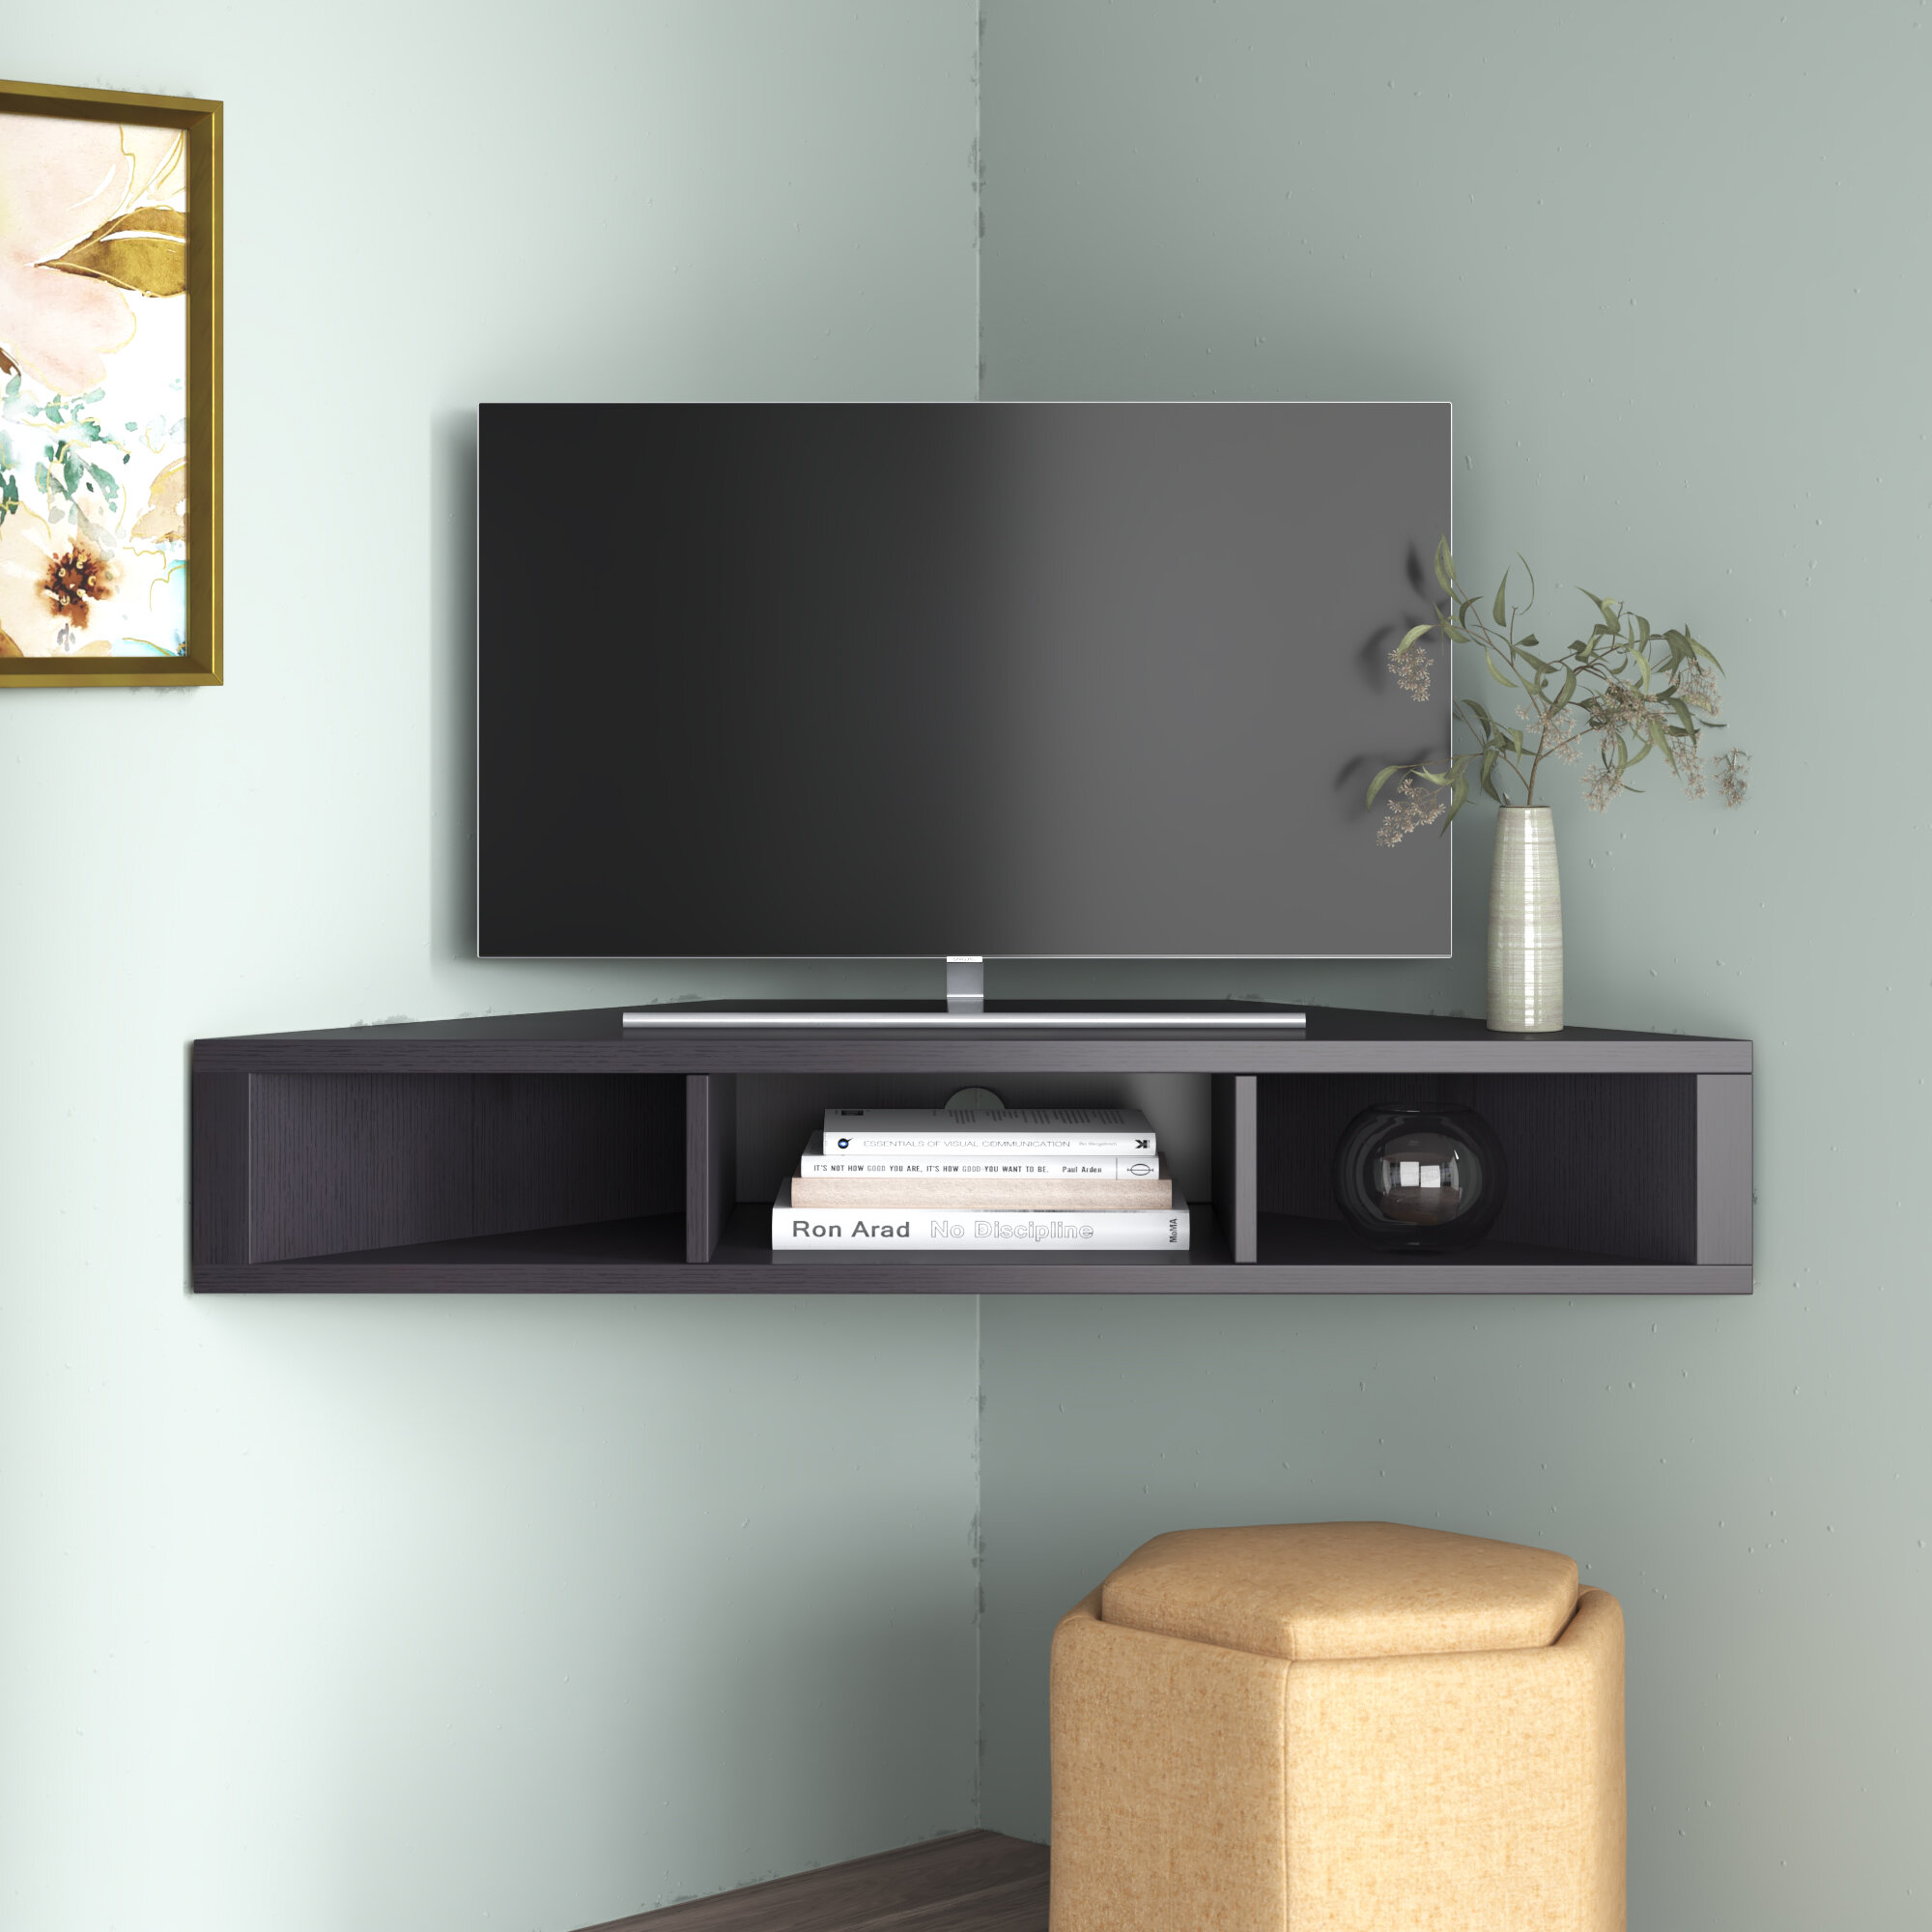 Ebern Designs French Floating Corner Tv Stand For Tvs Up To 50 Reviews Wayfair